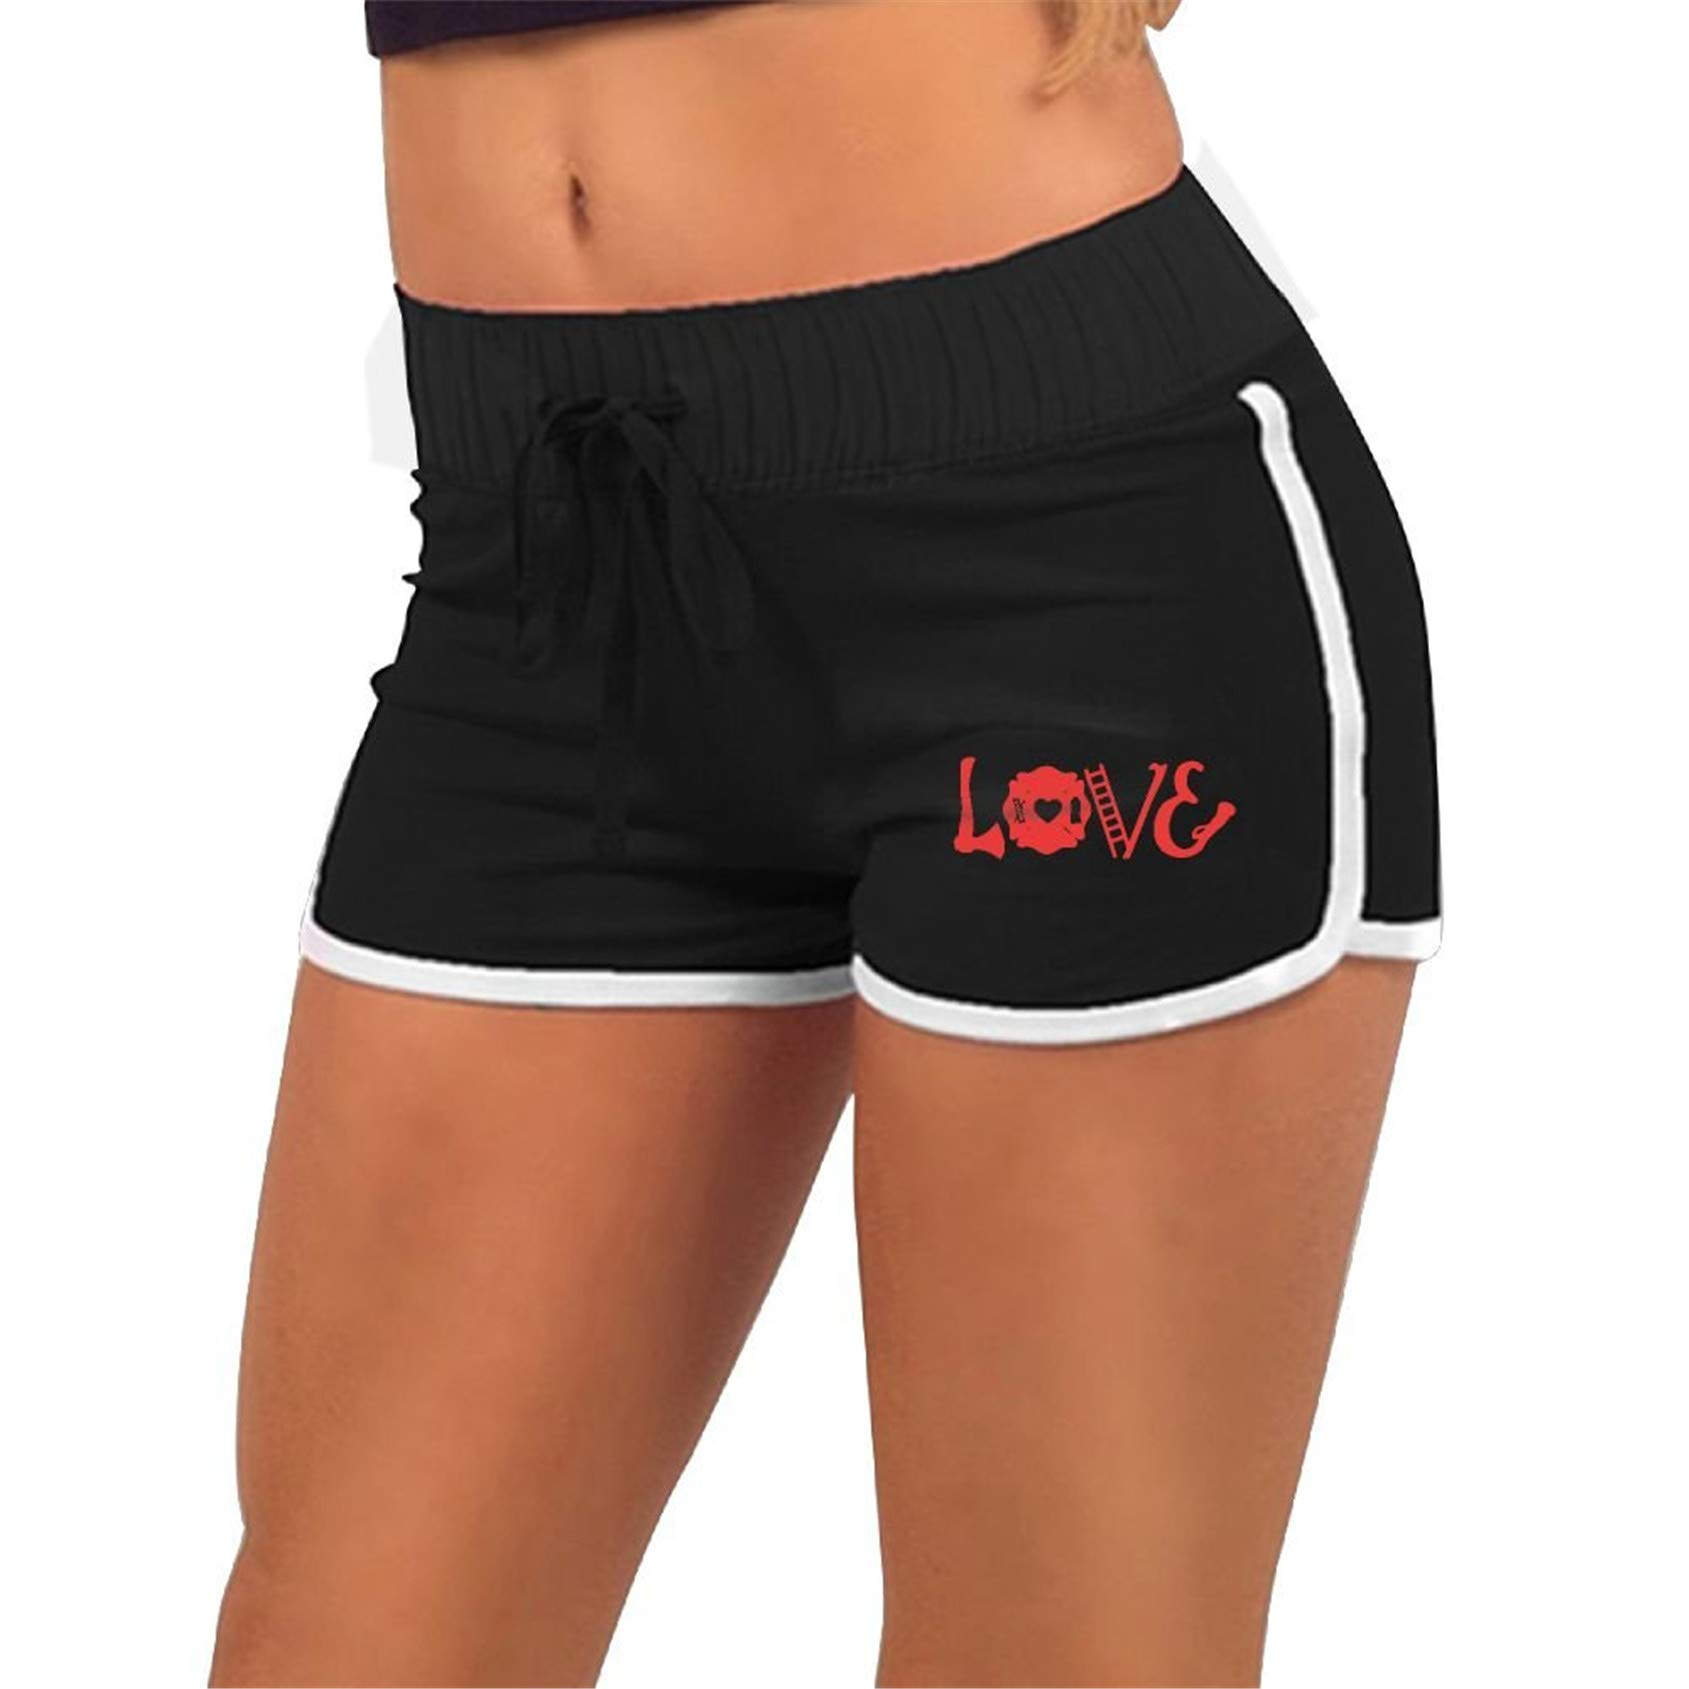 Love Axe Firefighter,Sport Hot Pants Pants with,Athletic Elastic Waist Womens Sports Shorts